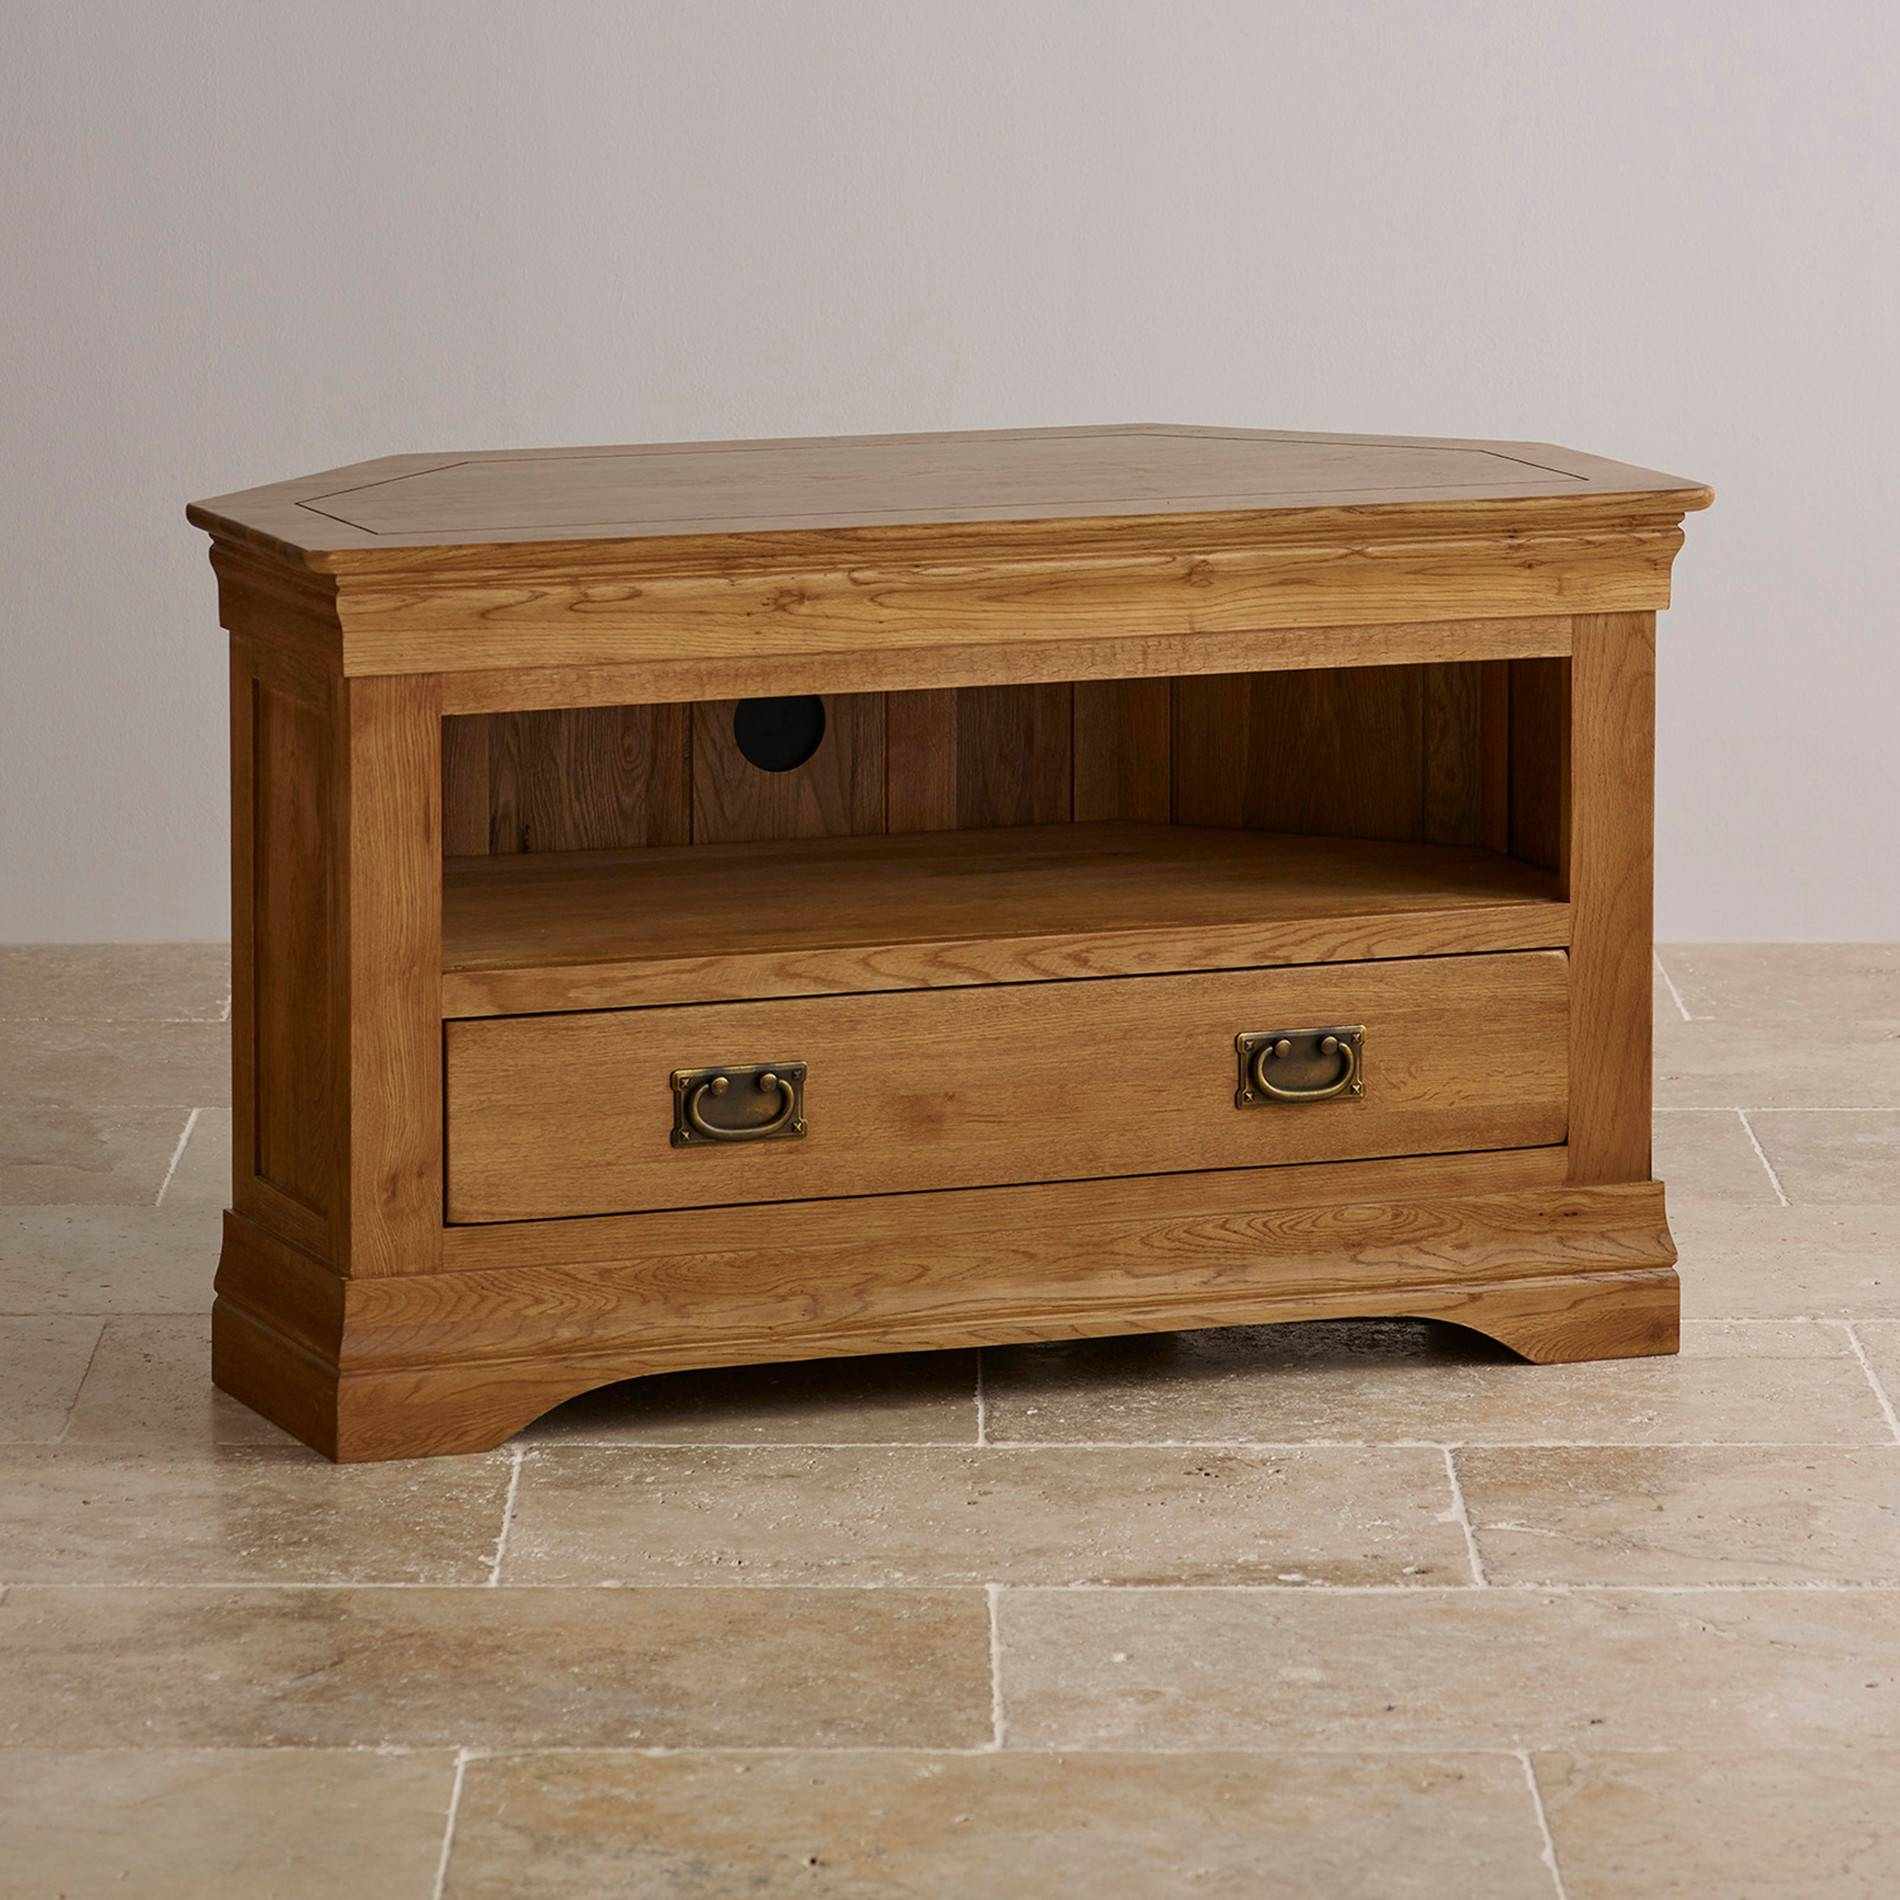 French Farmhouse Corner Tv Unit | Solid Oak | Oak Furniture Land For Corner Tv Cabinets (View 7 of 15)